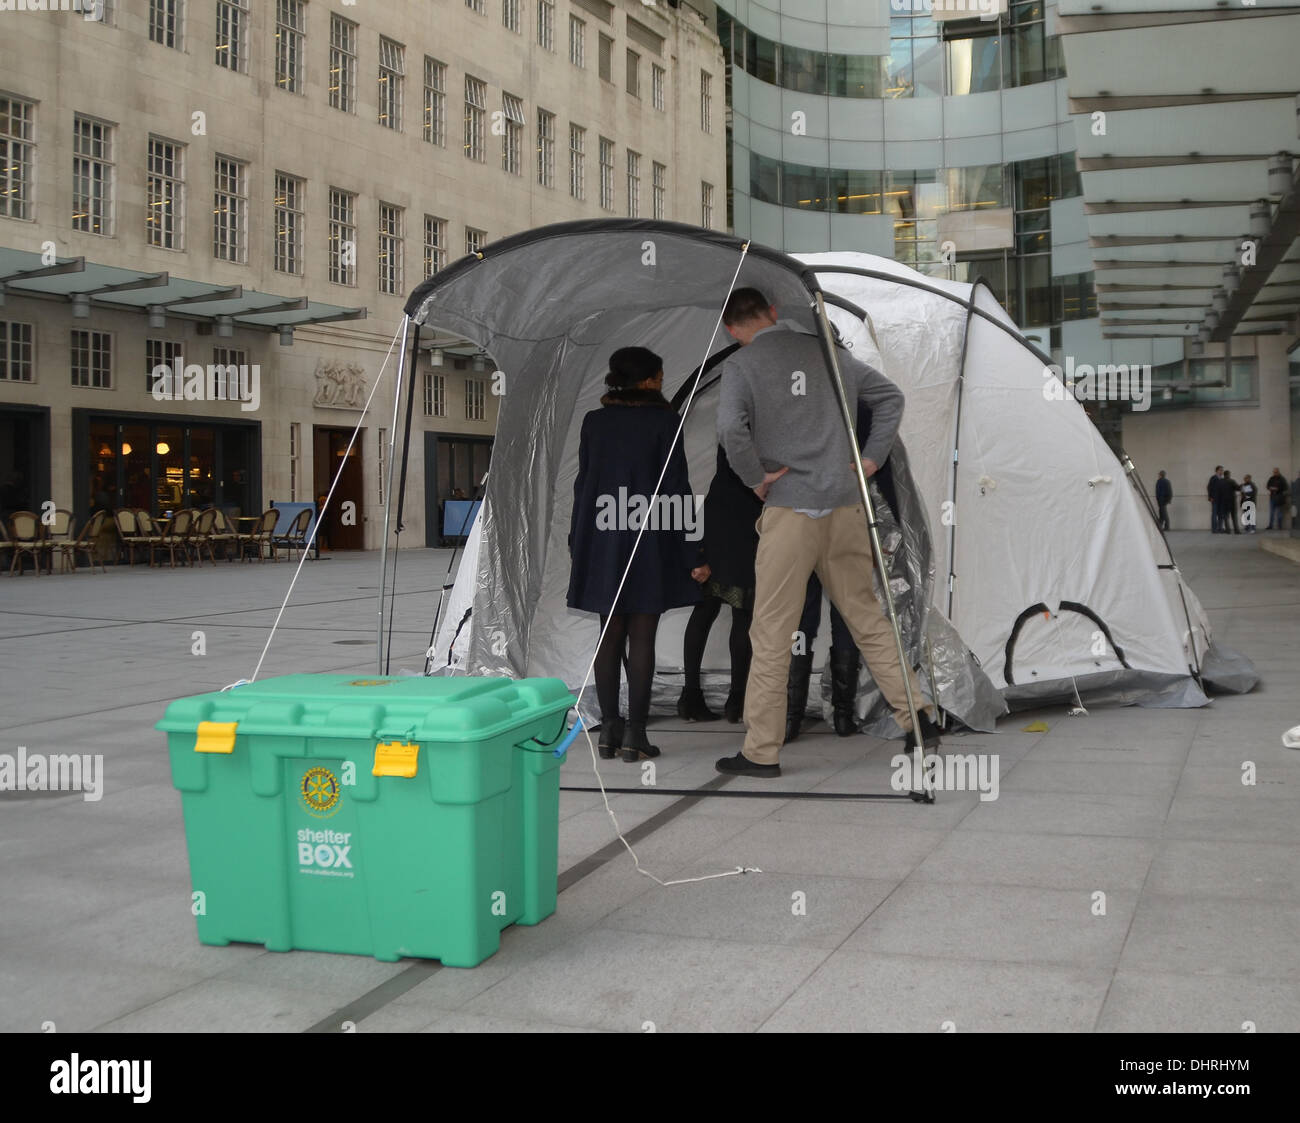 London, UK. 14th November 2013. One of the Shelterbox Tents that are being used in the Relief effort following the Typhoon and 7.2 Magnitude Earthquake that have struck the region in recent Weeks Credit:  Sebastian Toombs/Alamy Live News - Stock Image